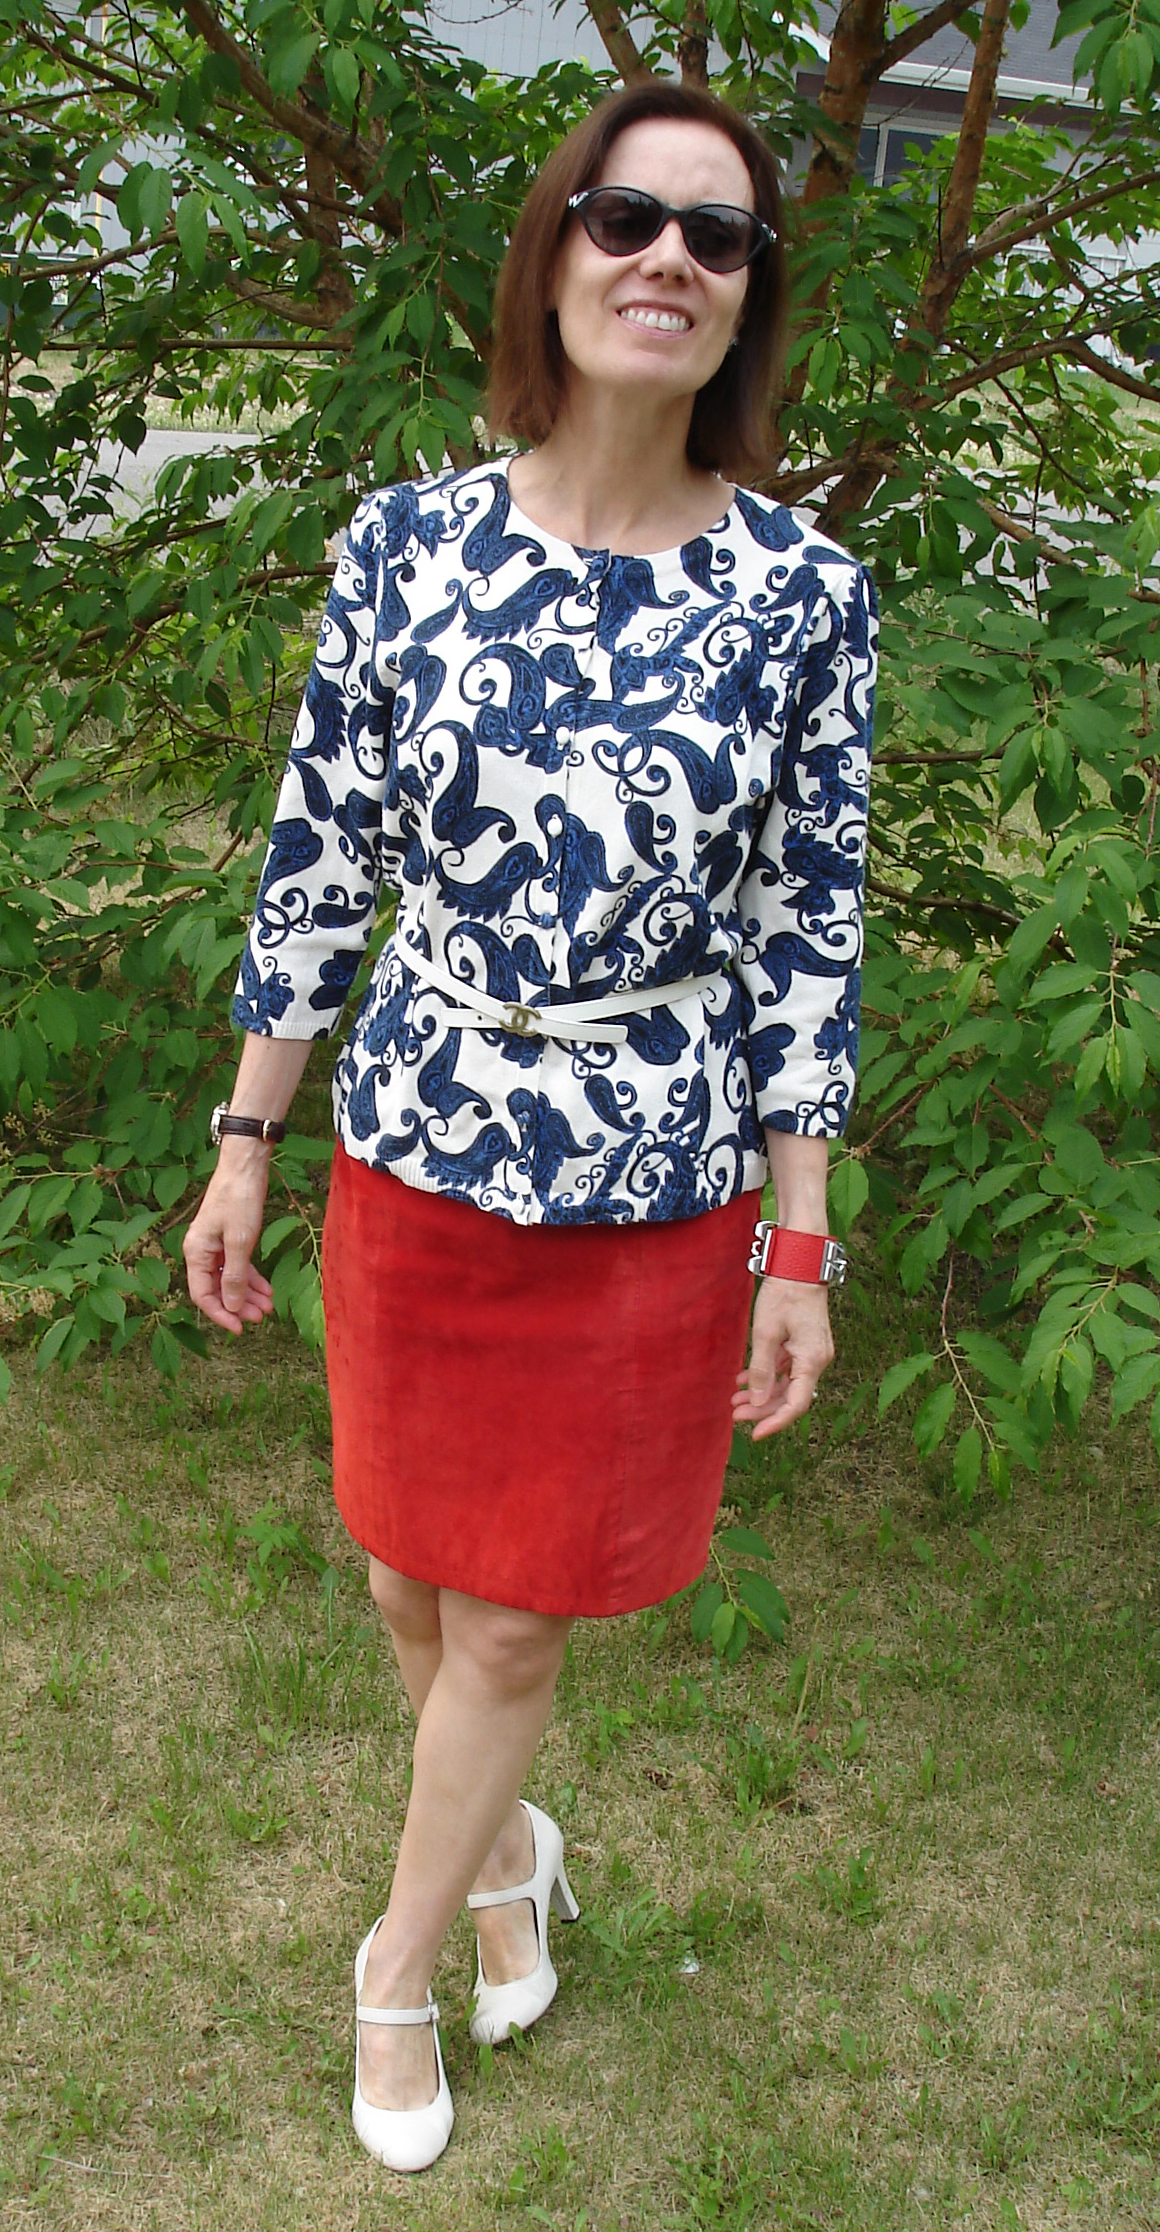 #over50 #over40 red white and blue outfit for Independence Day | High Latitude Style | http://www.highlatitudestyle.com